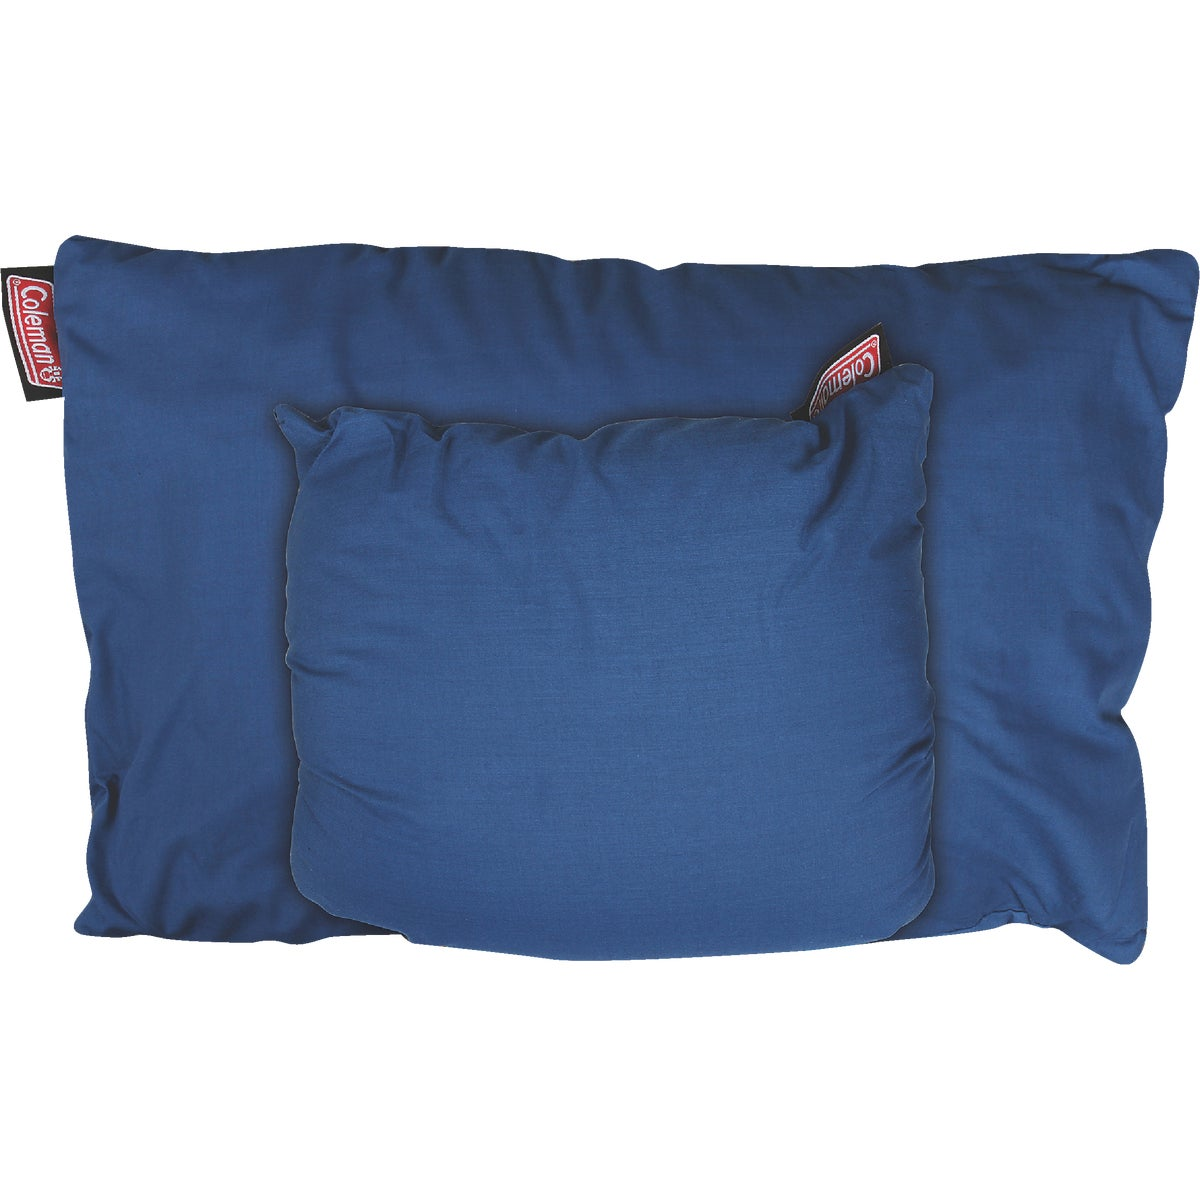 TRAVEL PILLOW - 49244 by Academy Broadway Cor